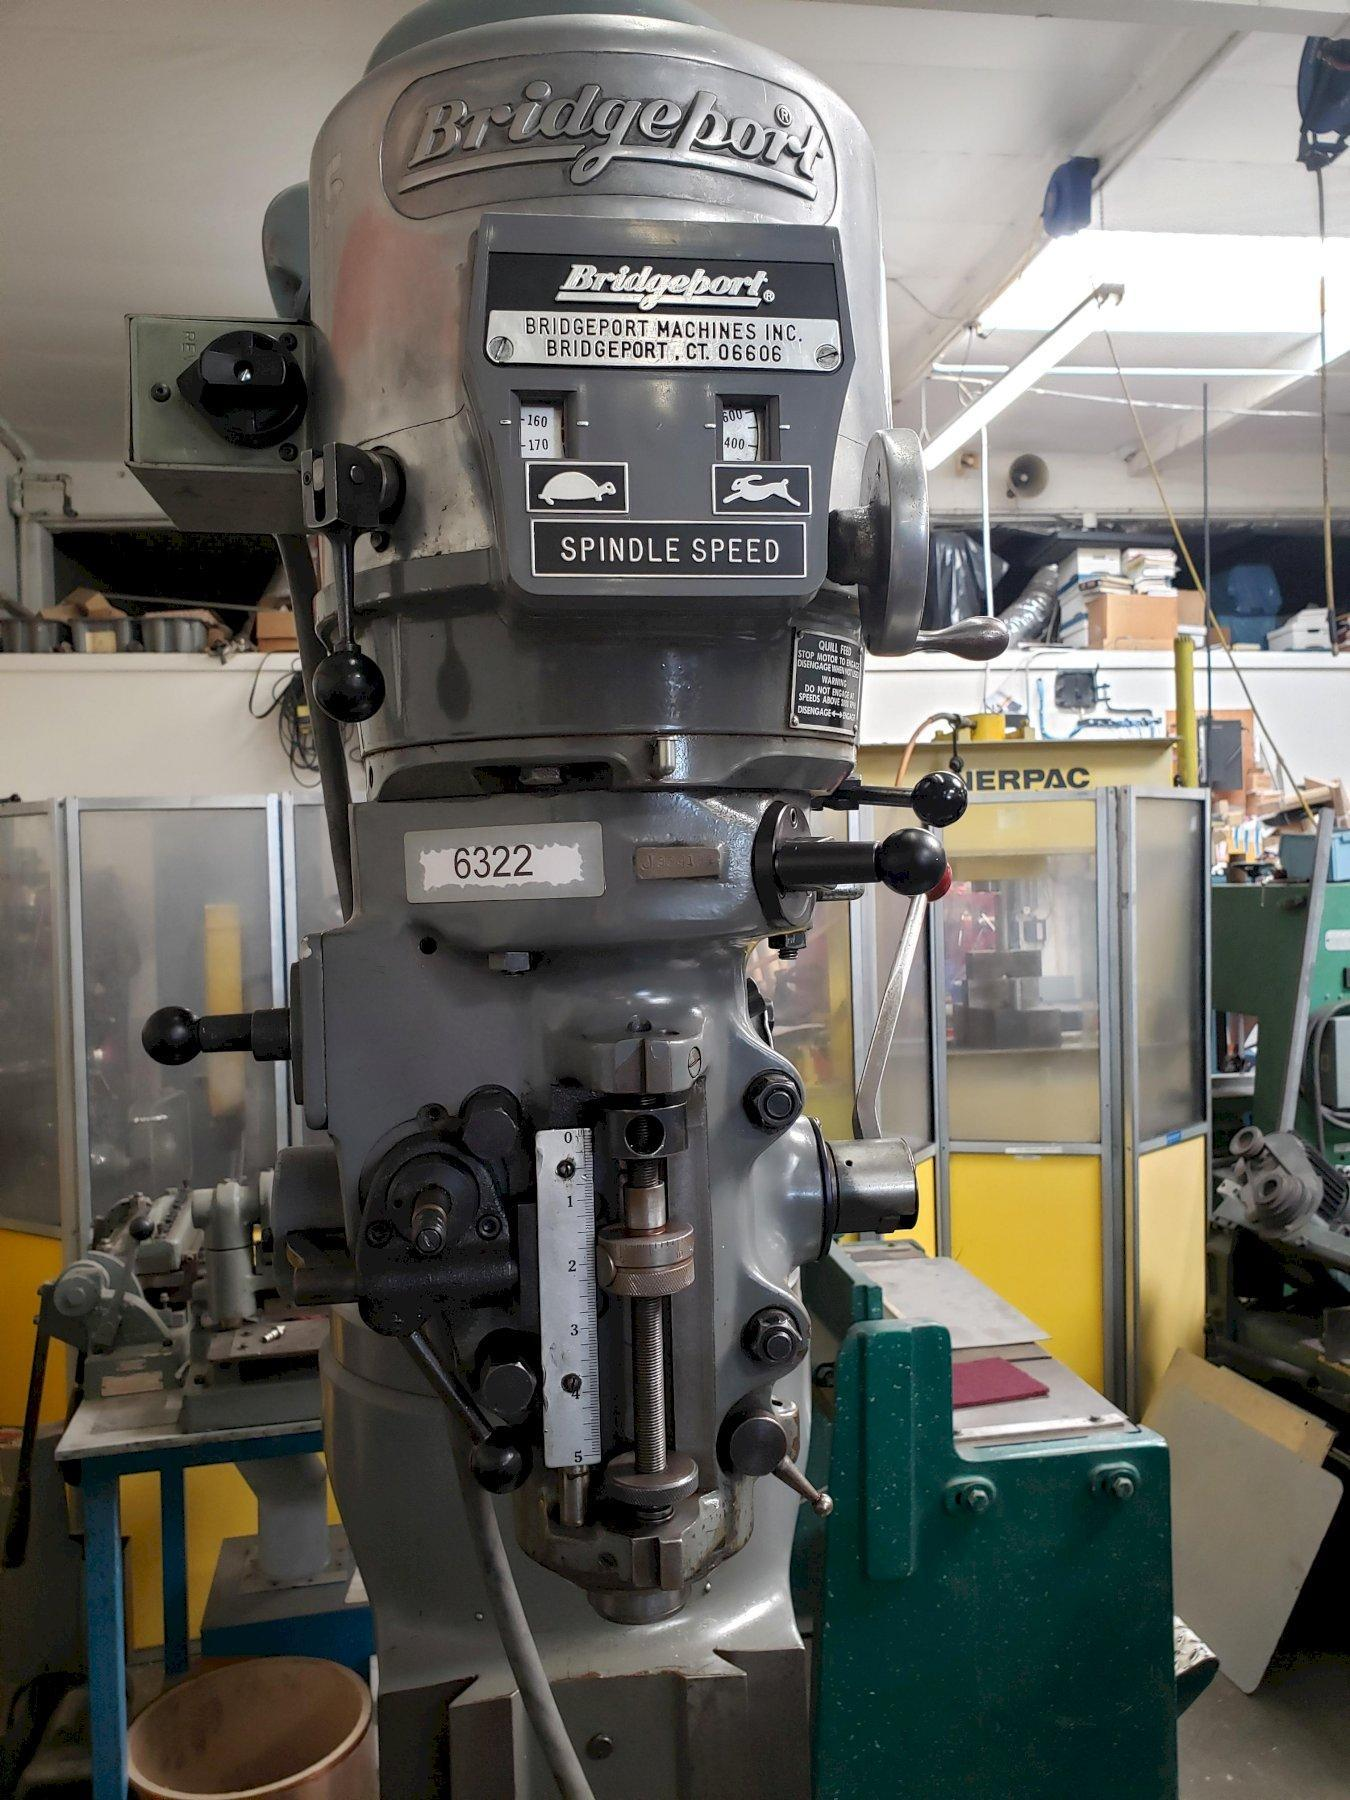 Bridgeport Series I Vertical Mill with: Rebuilt Head, New Align Power Feed Table, New X & Y Screws and Nuts, and One Shot Lube.